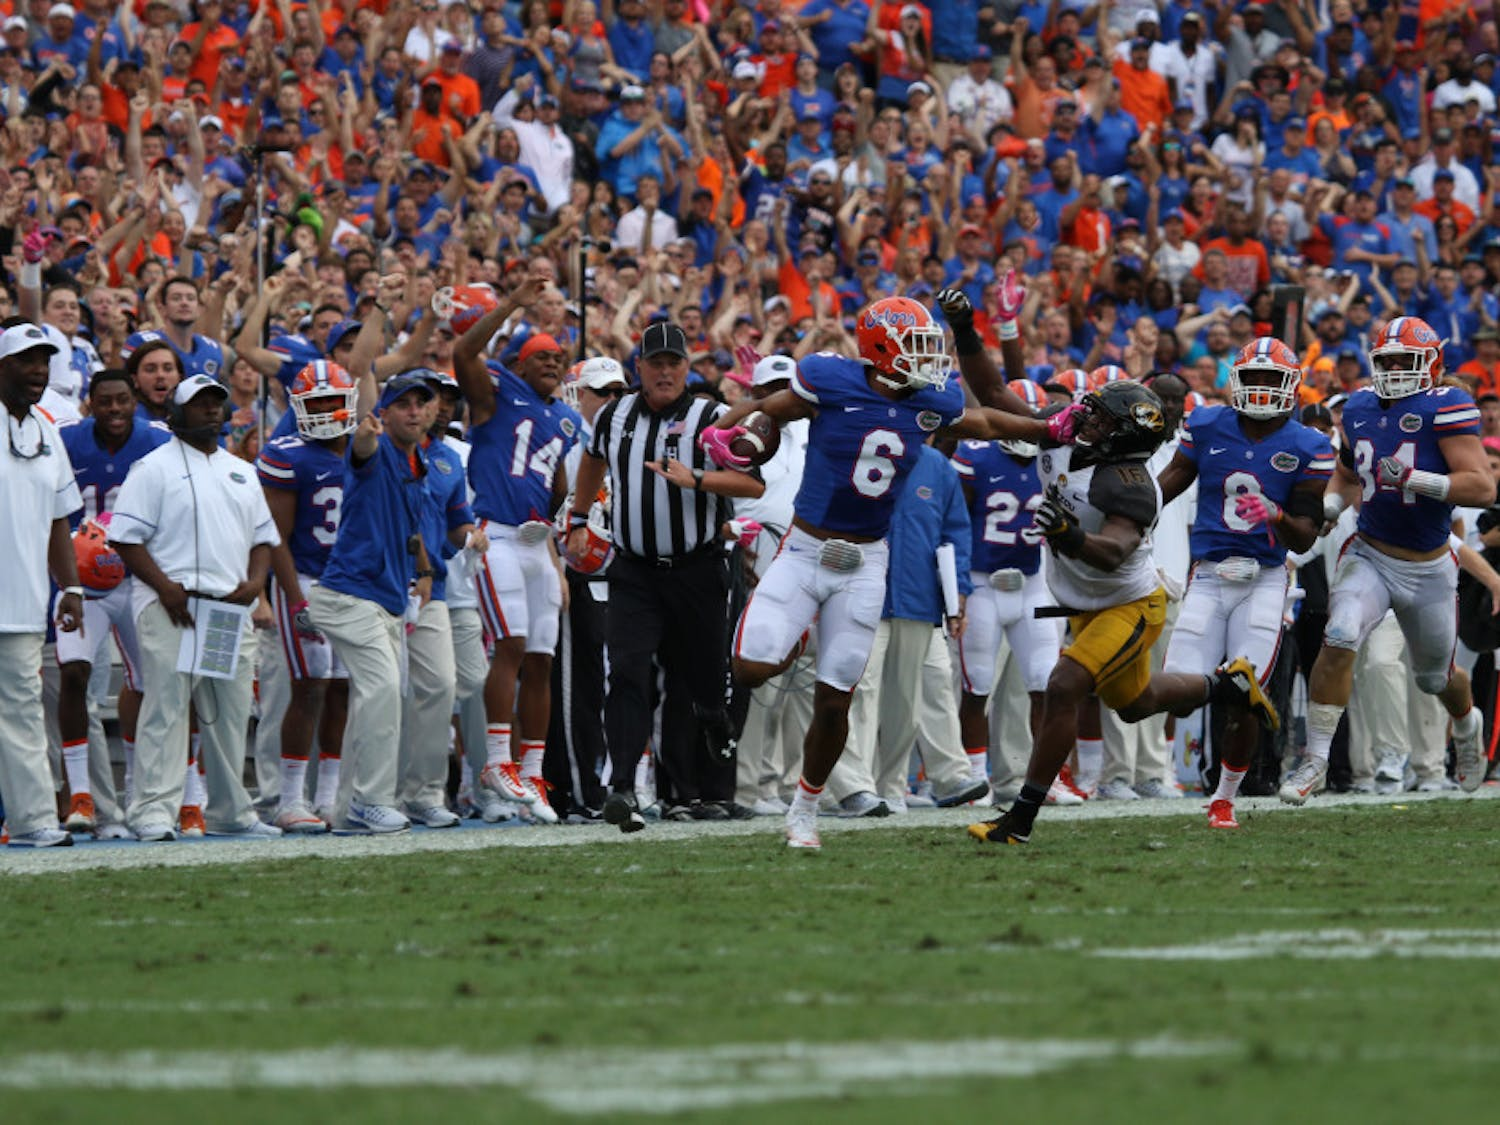 Quincy Wilson (6) stiff-arms a Missouri defender after intercepting a pass during Florida's 40-14 homecoming win over Missouri on Oct. 15, 2016, at Ben Hill Griffin Stadium.